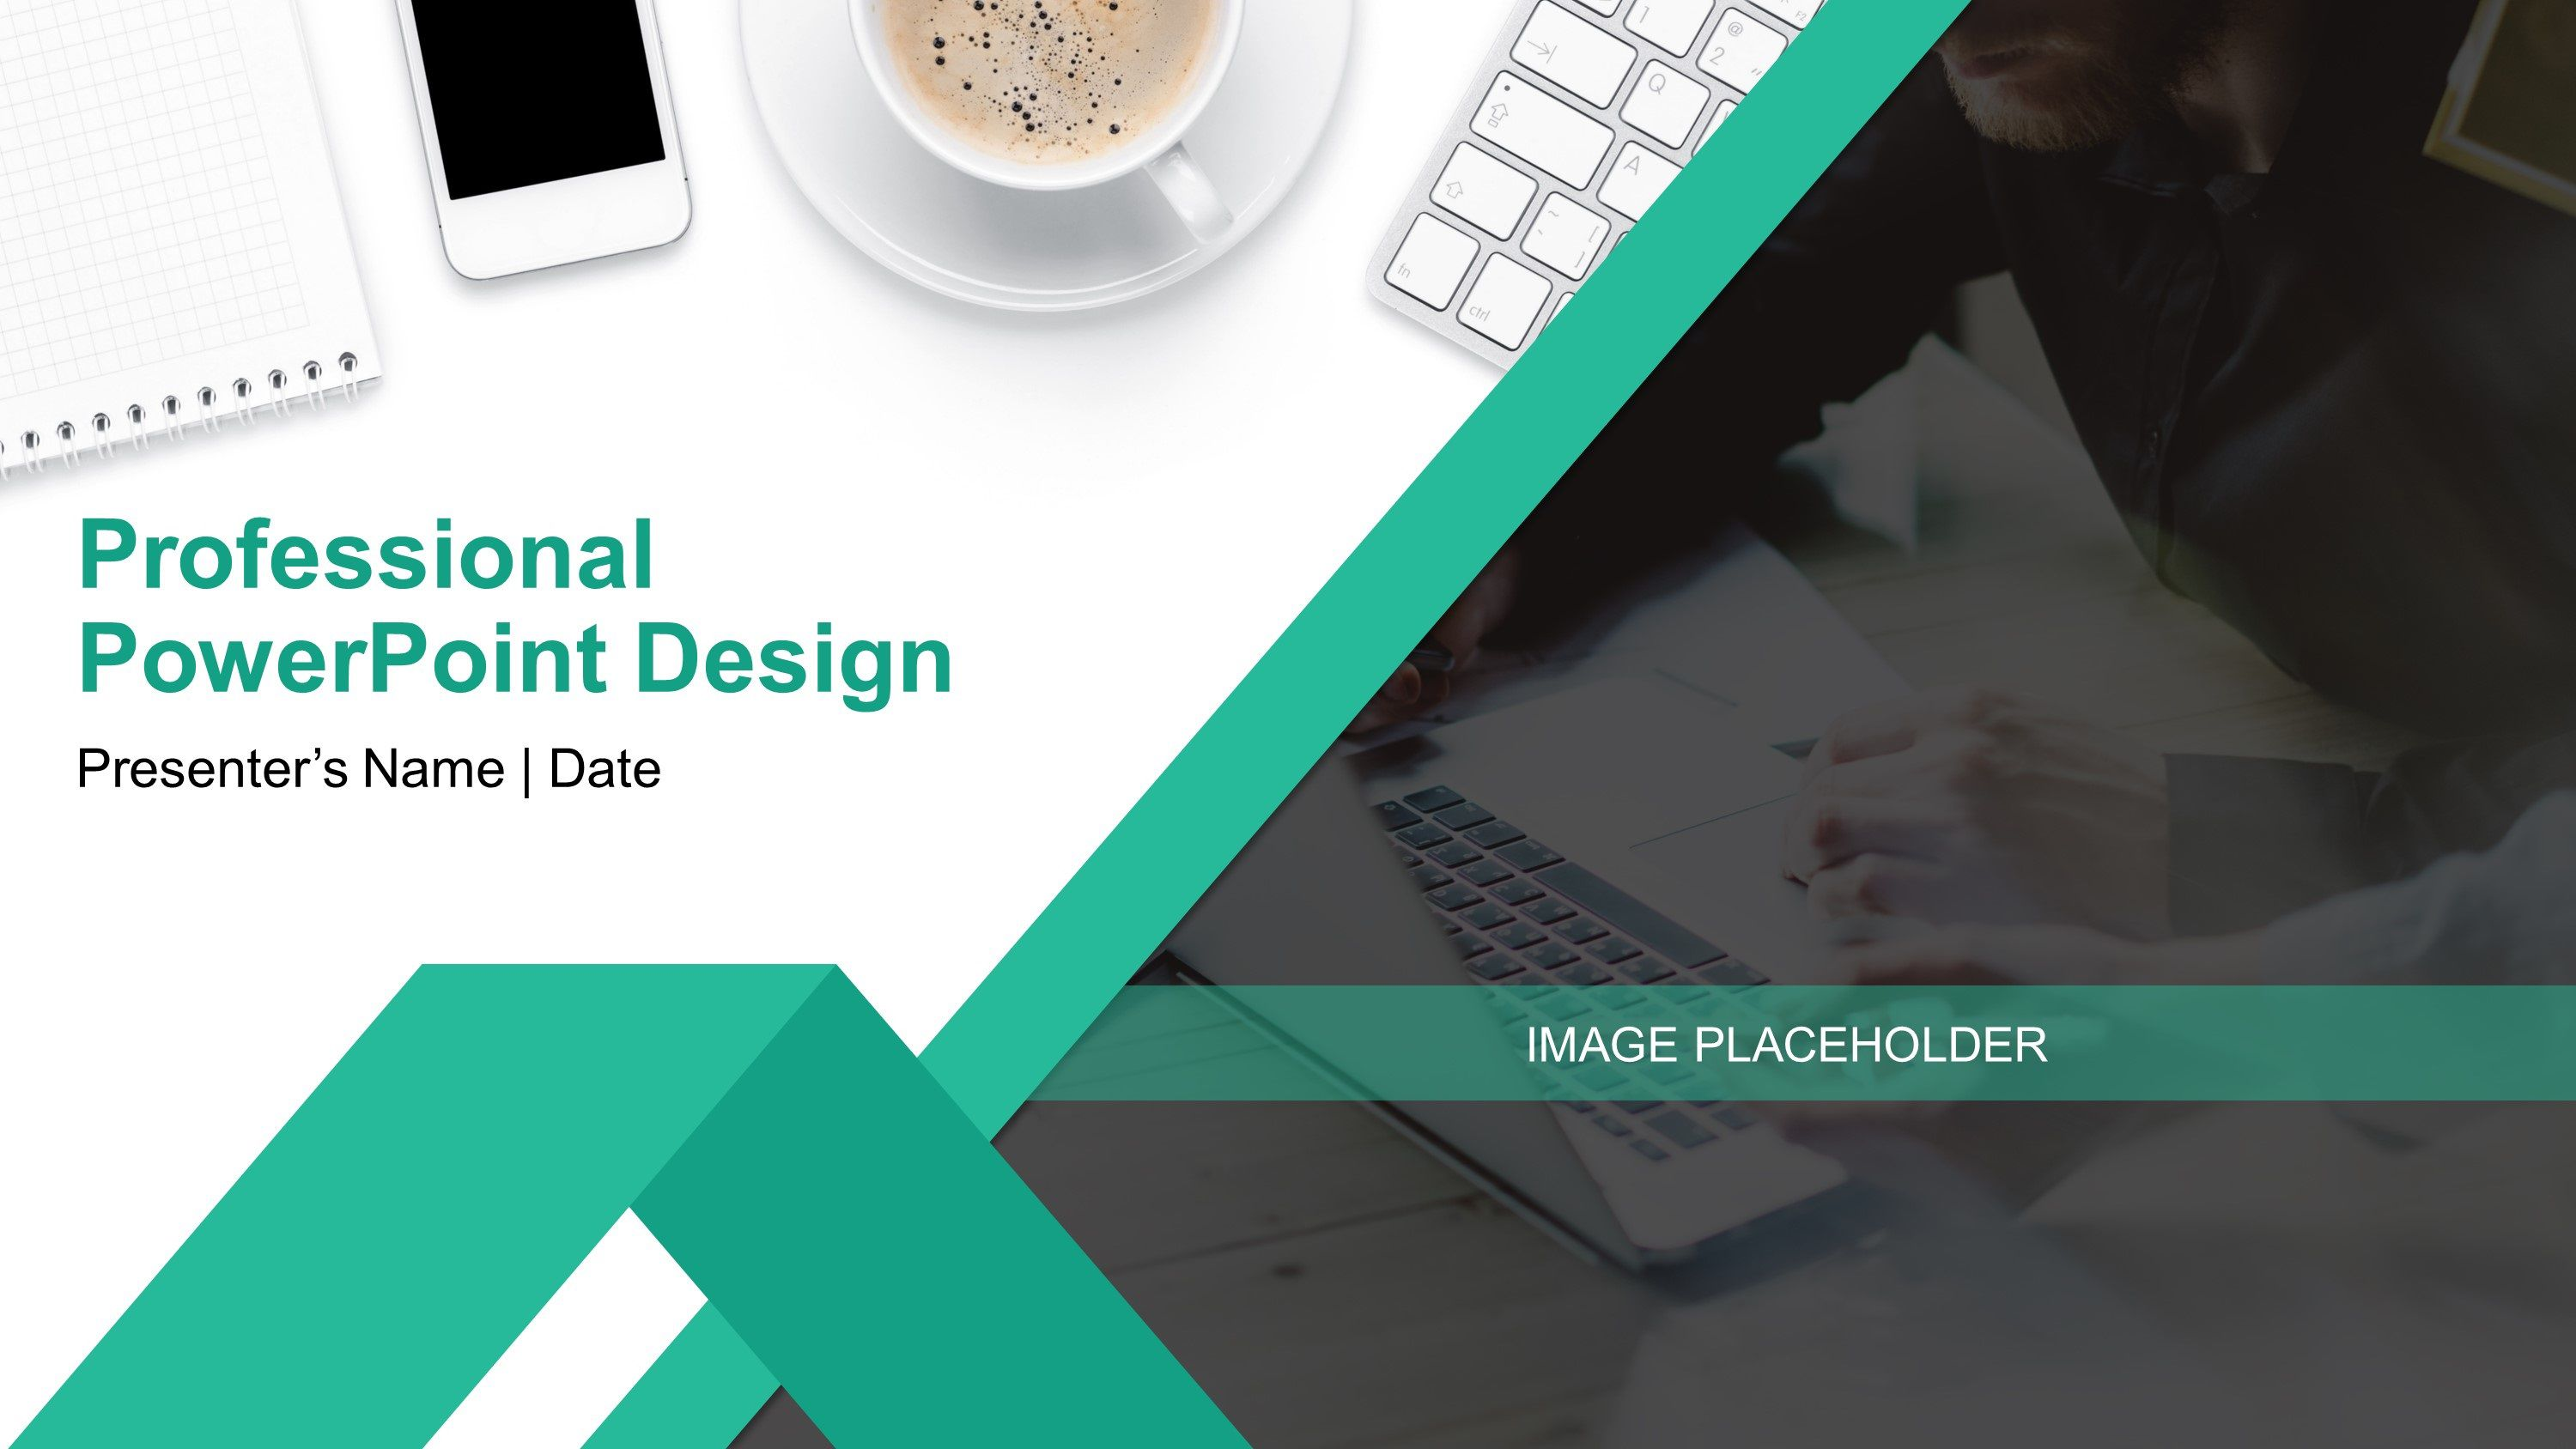 002 Unforgettable Ppt Slide Design Template Free Download Sample  One Resume Team Introduction Powerpoint PresentationFull